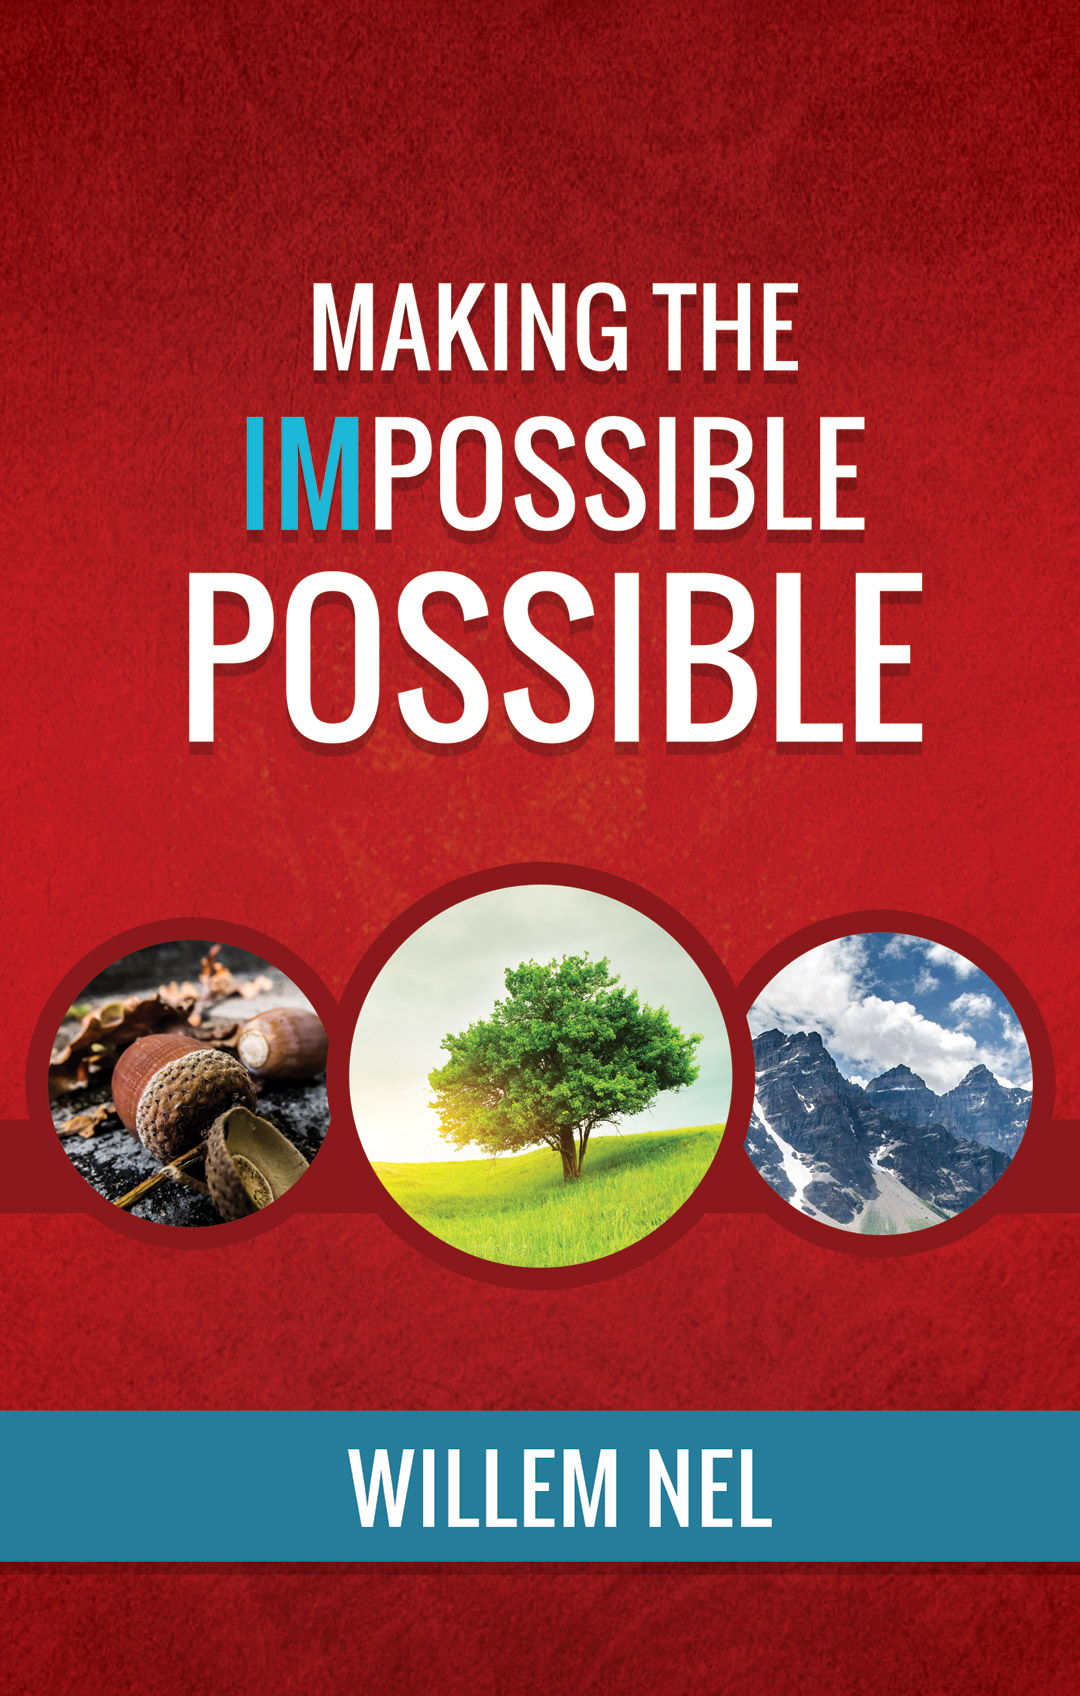 making the impossible possible cover design